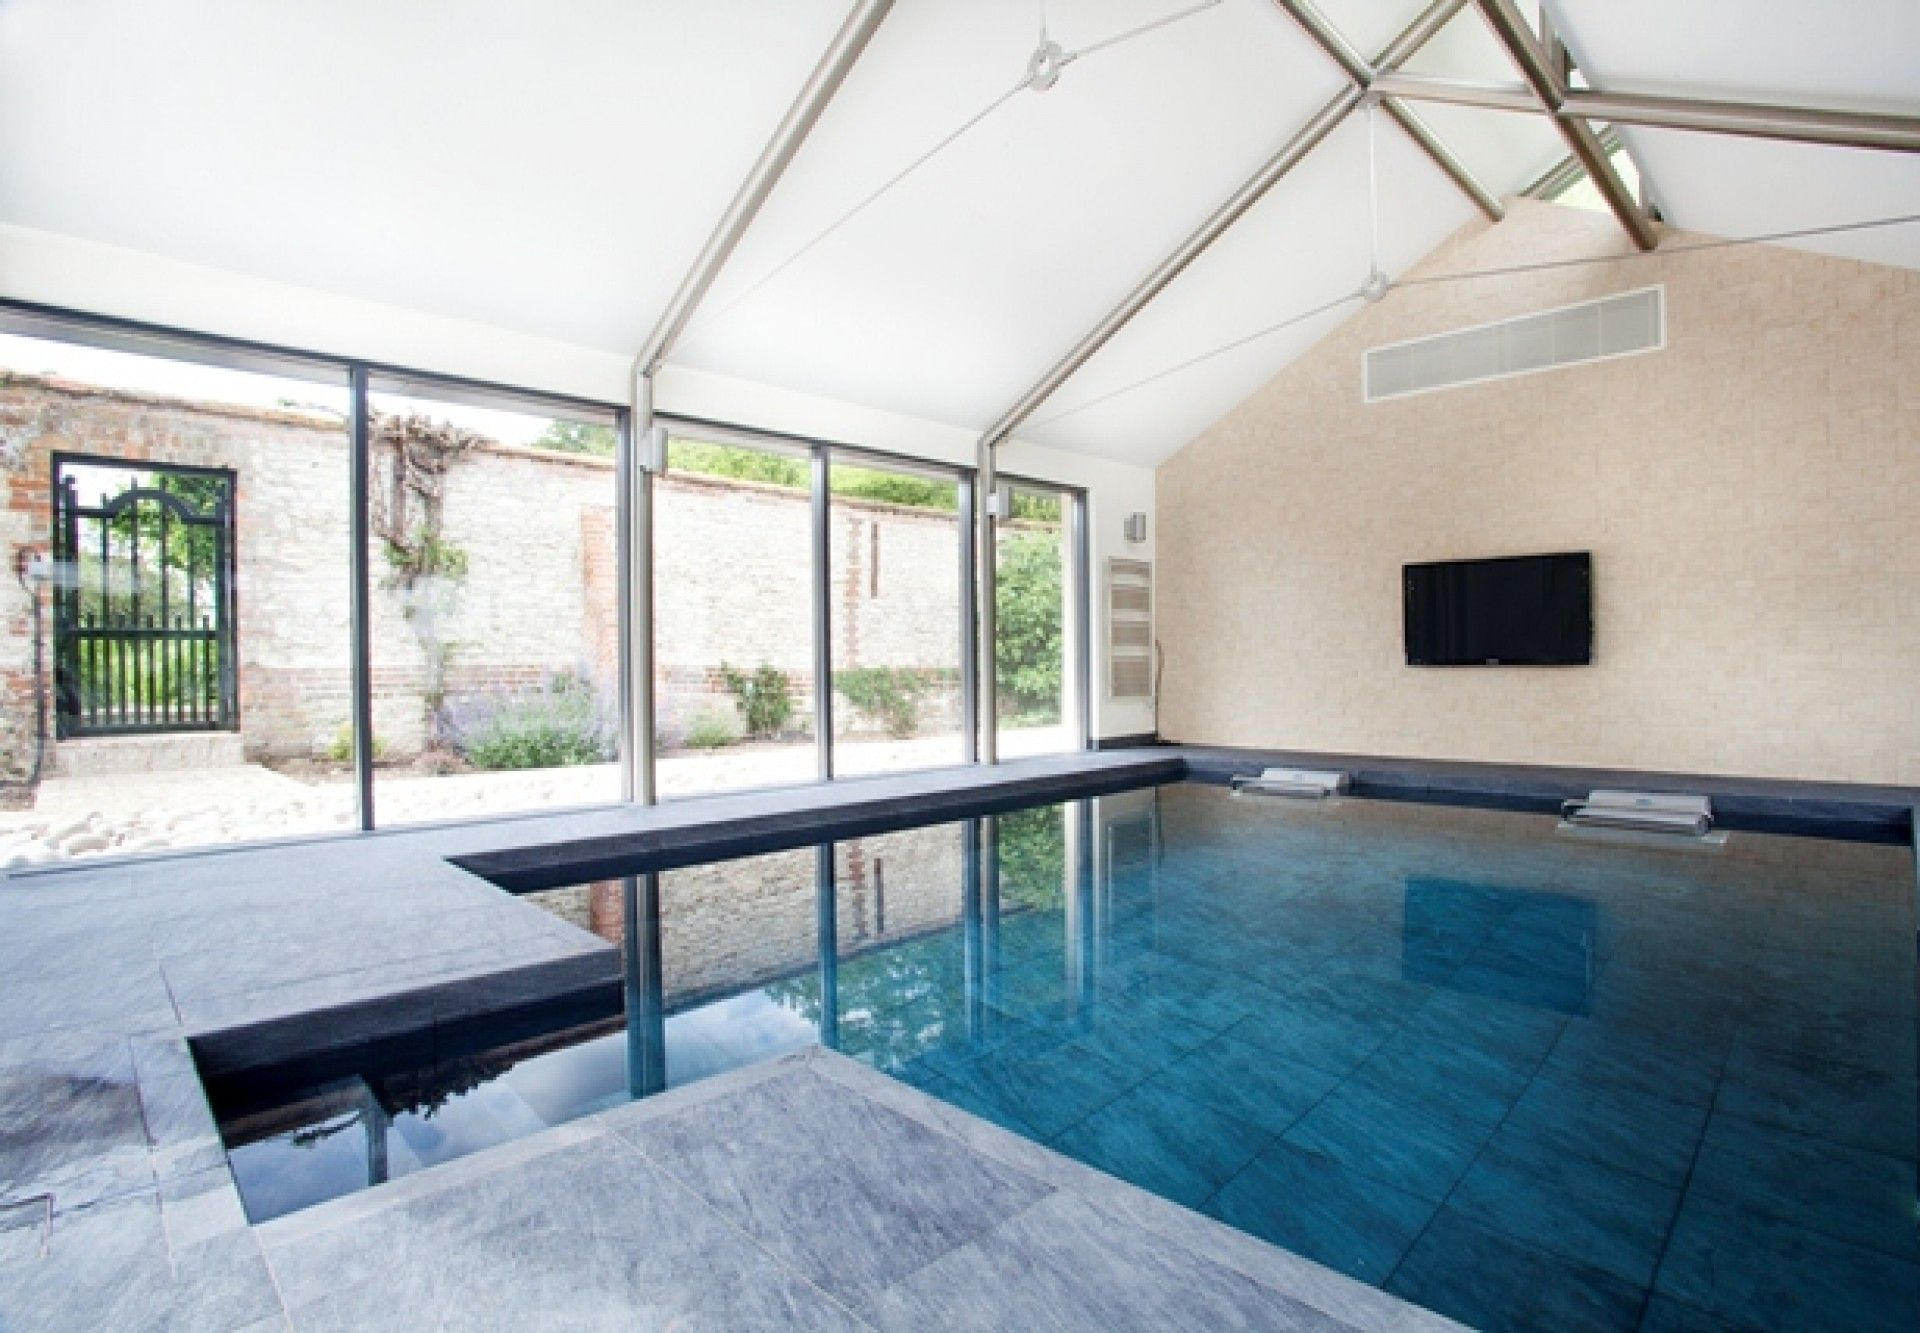 Indoor training pool with counter current units | Pools | Pinterest ...